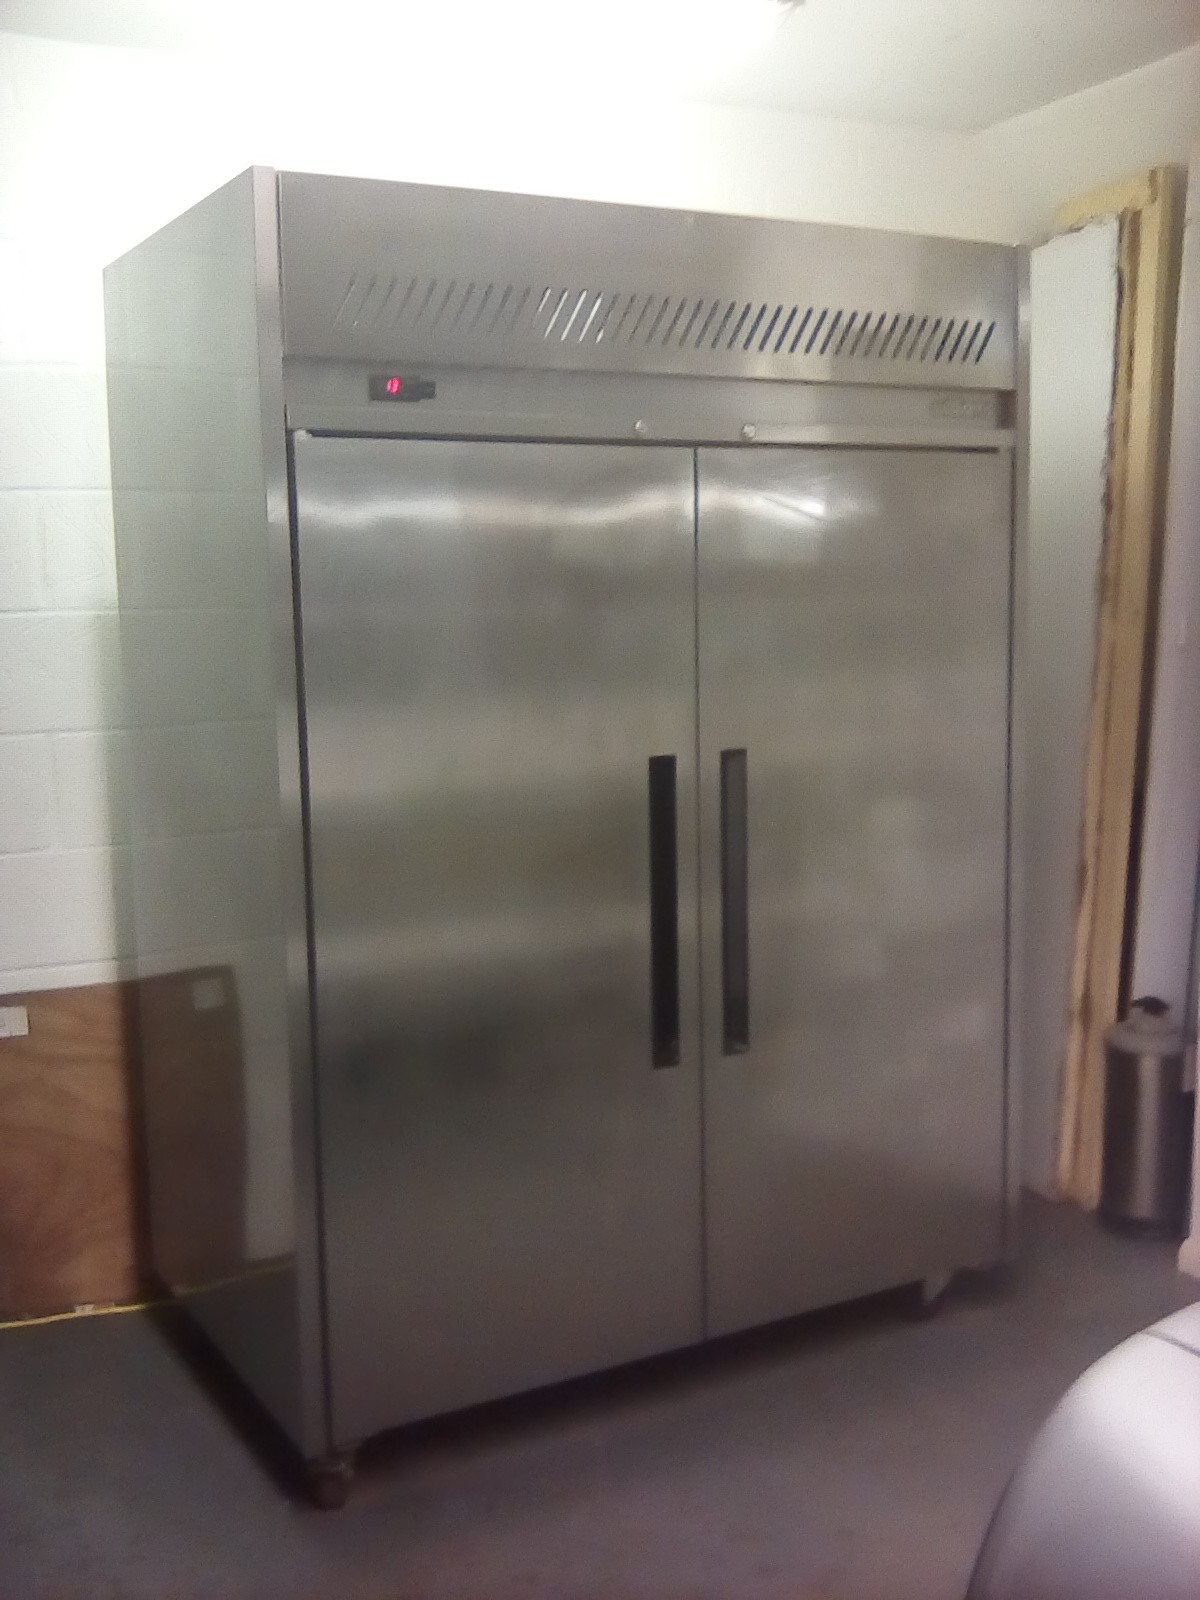 Secondhand Catering Equipment Upright Fridges Williams Double